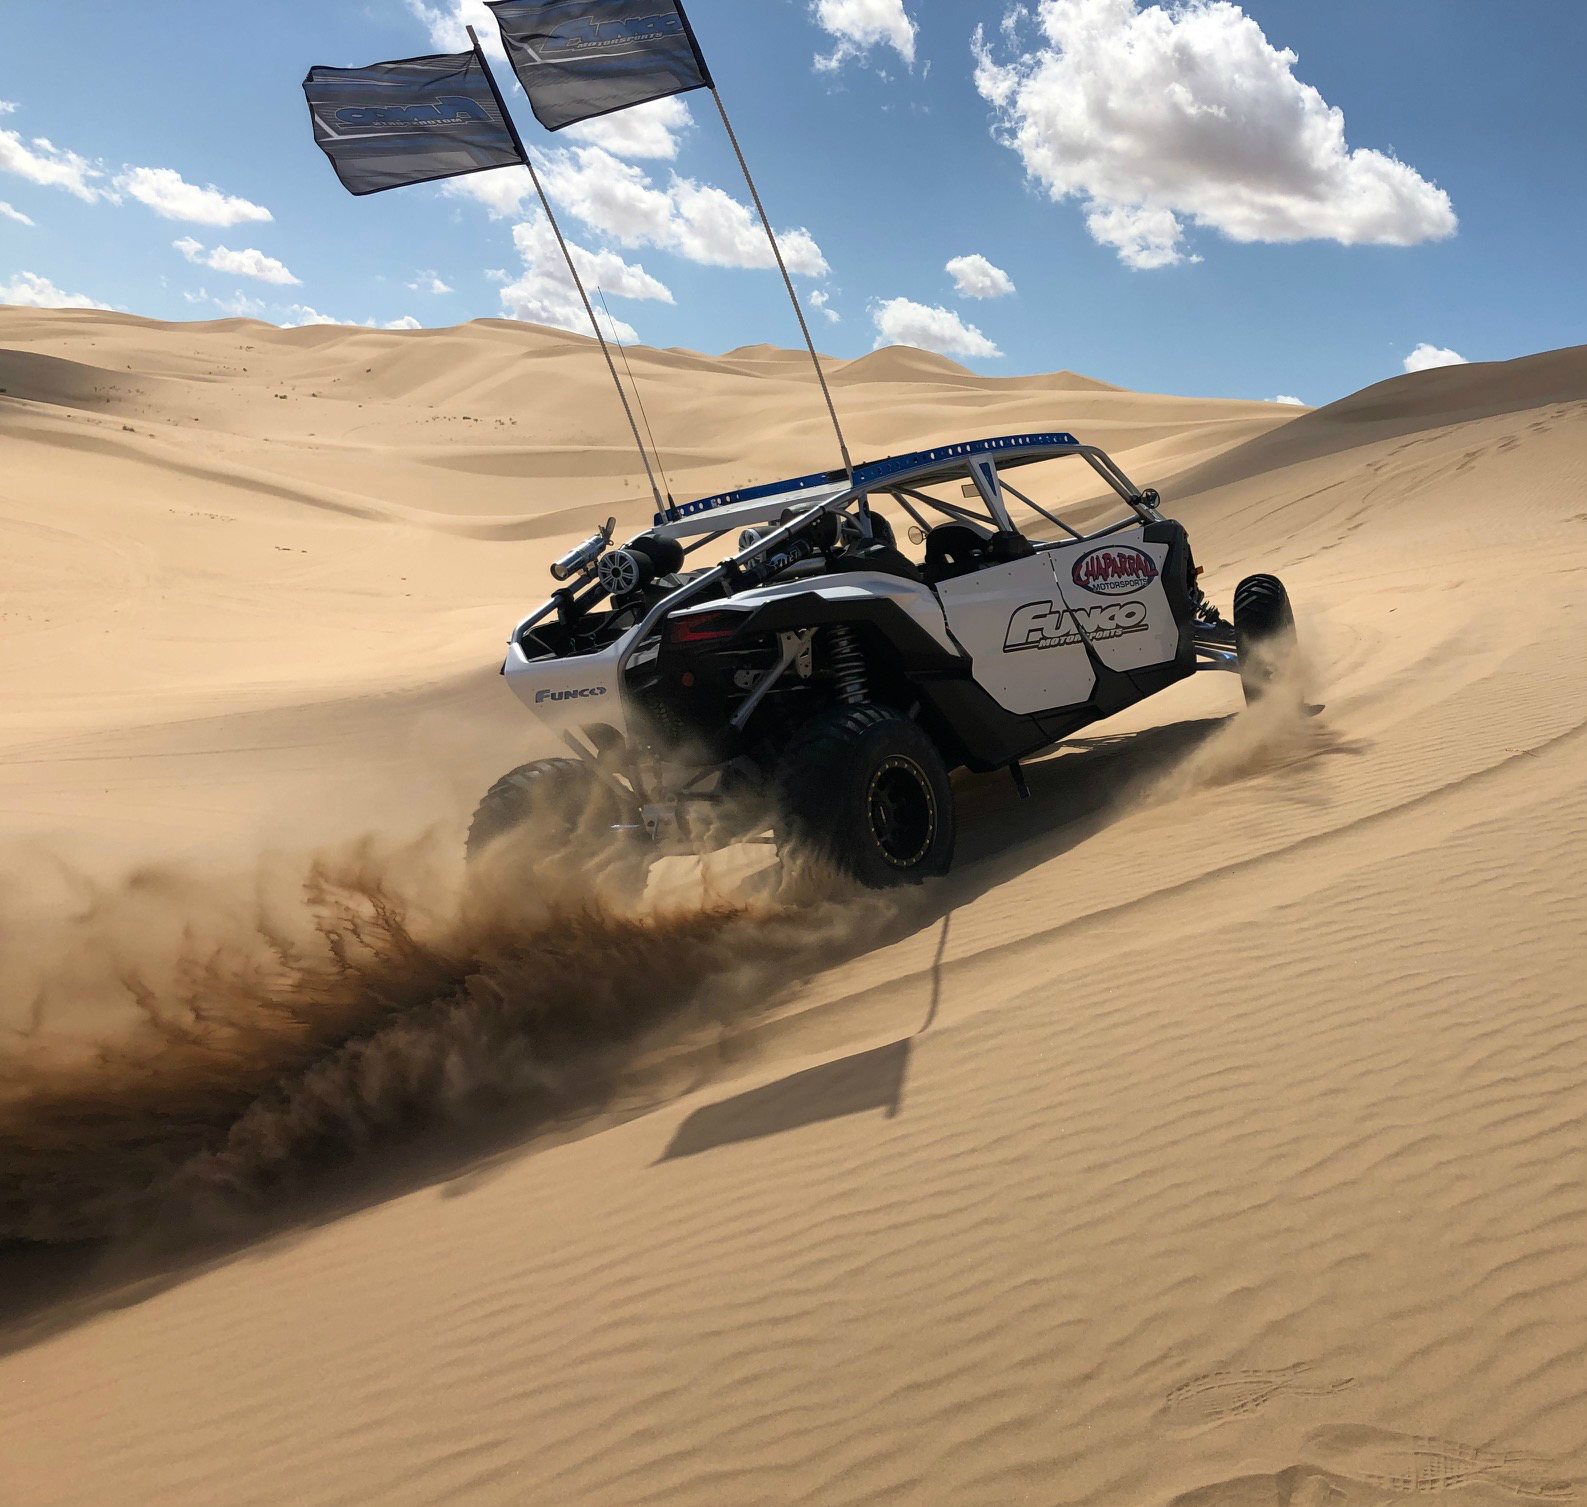 Gear up for the Sand Sand Dune Gear Buyer's Guide   ChapMoto.com